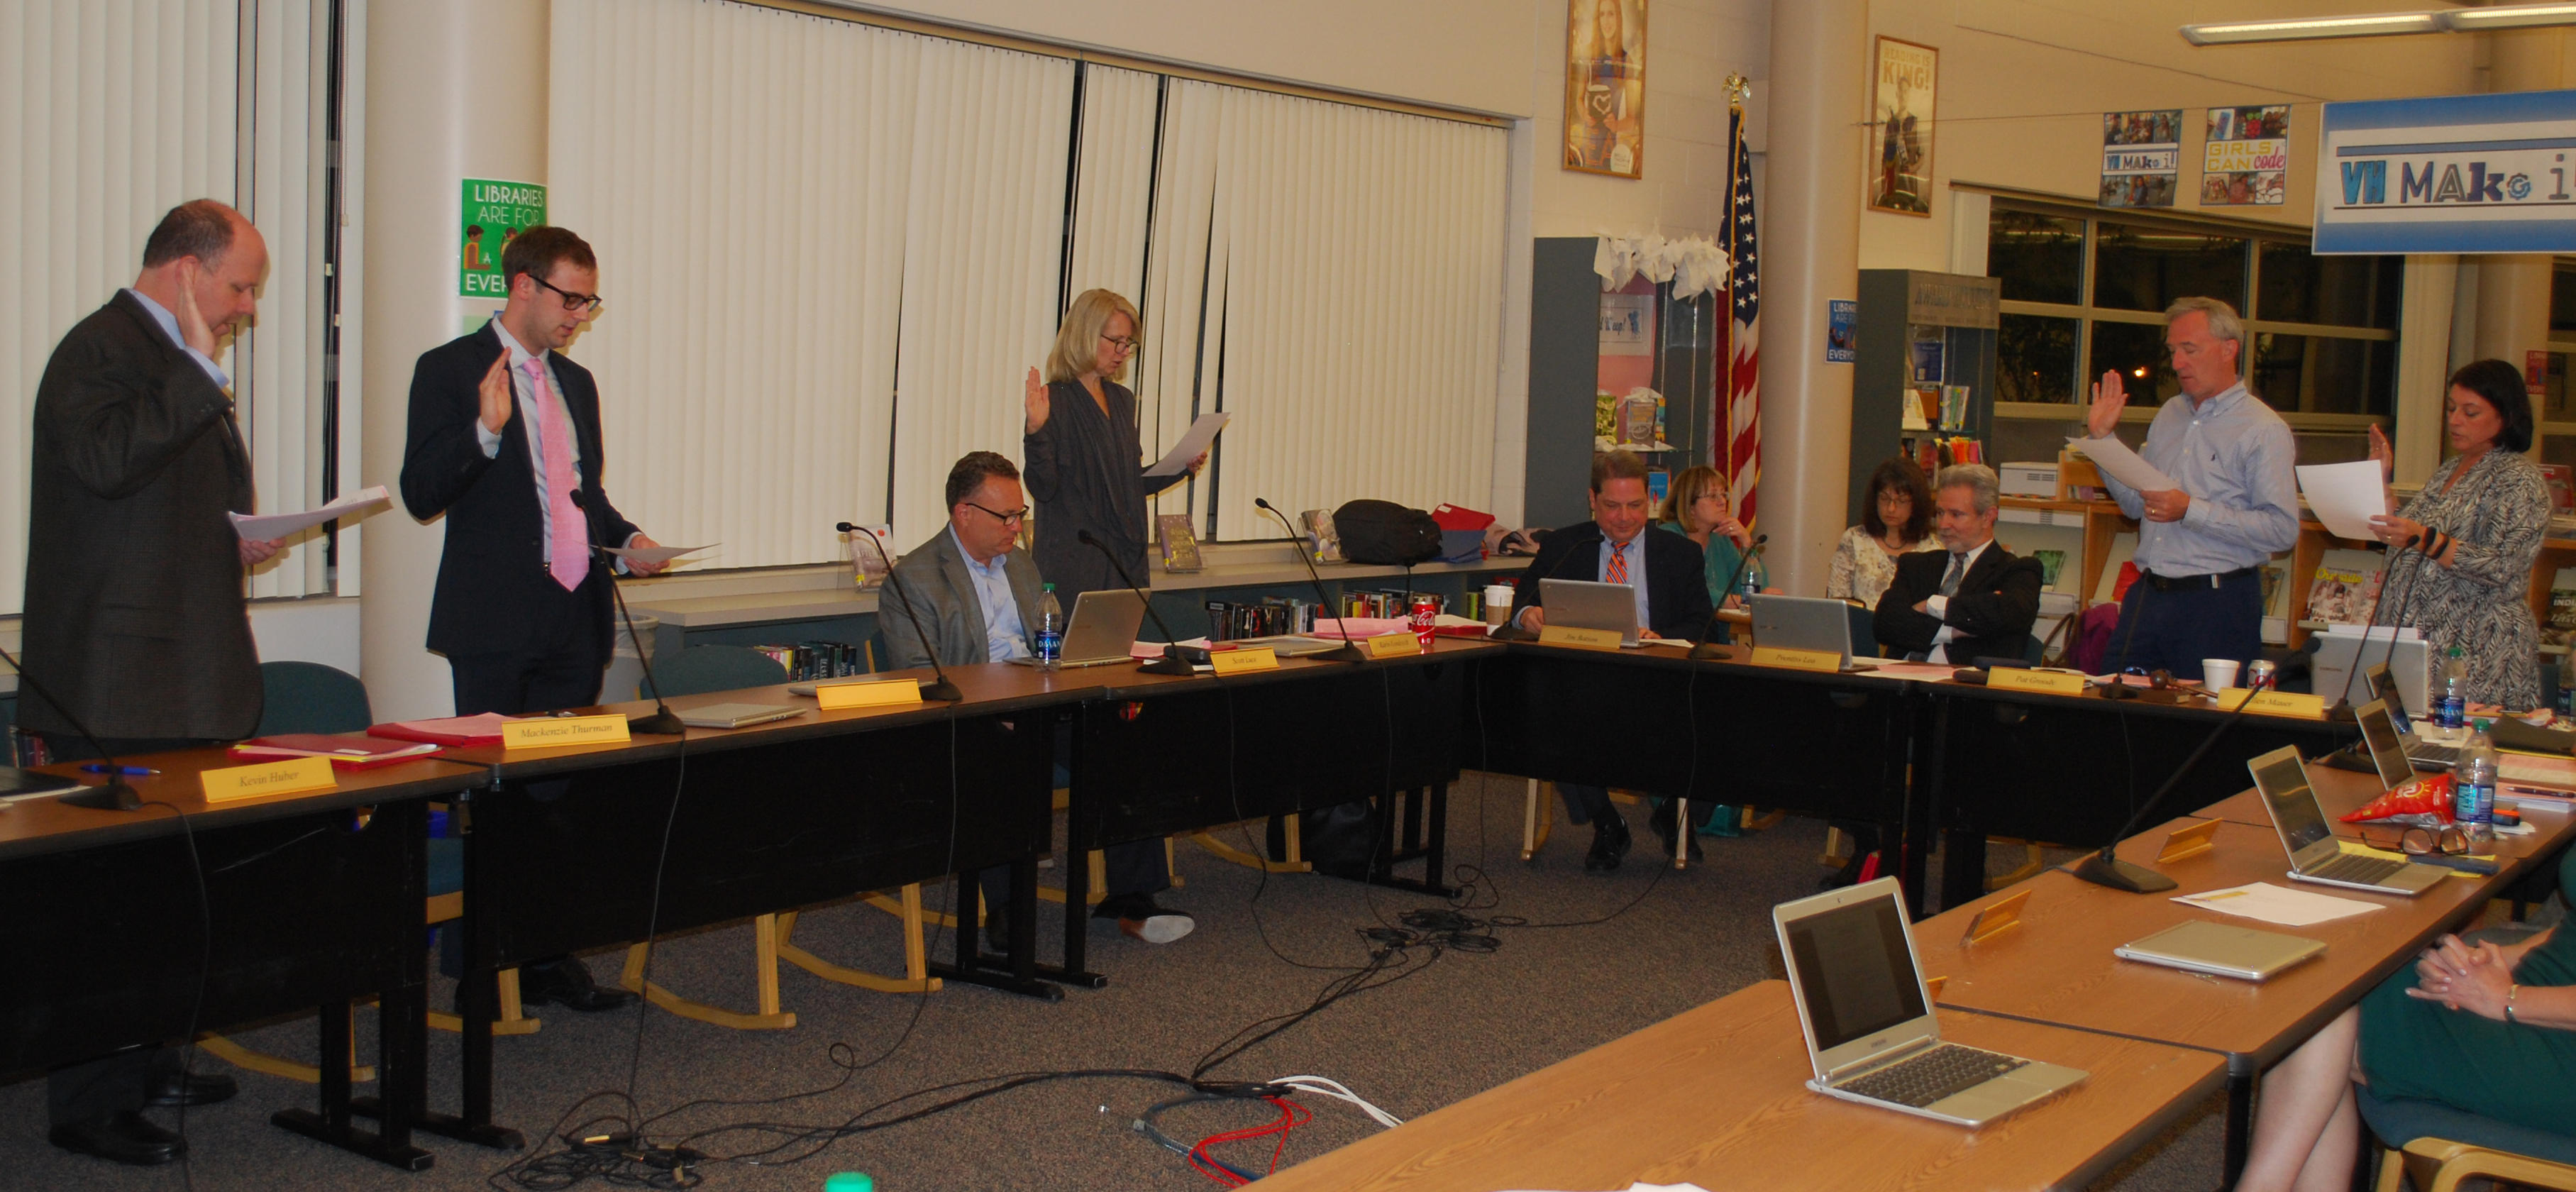 New Board of Education Members being sworn in at their first board meeting.